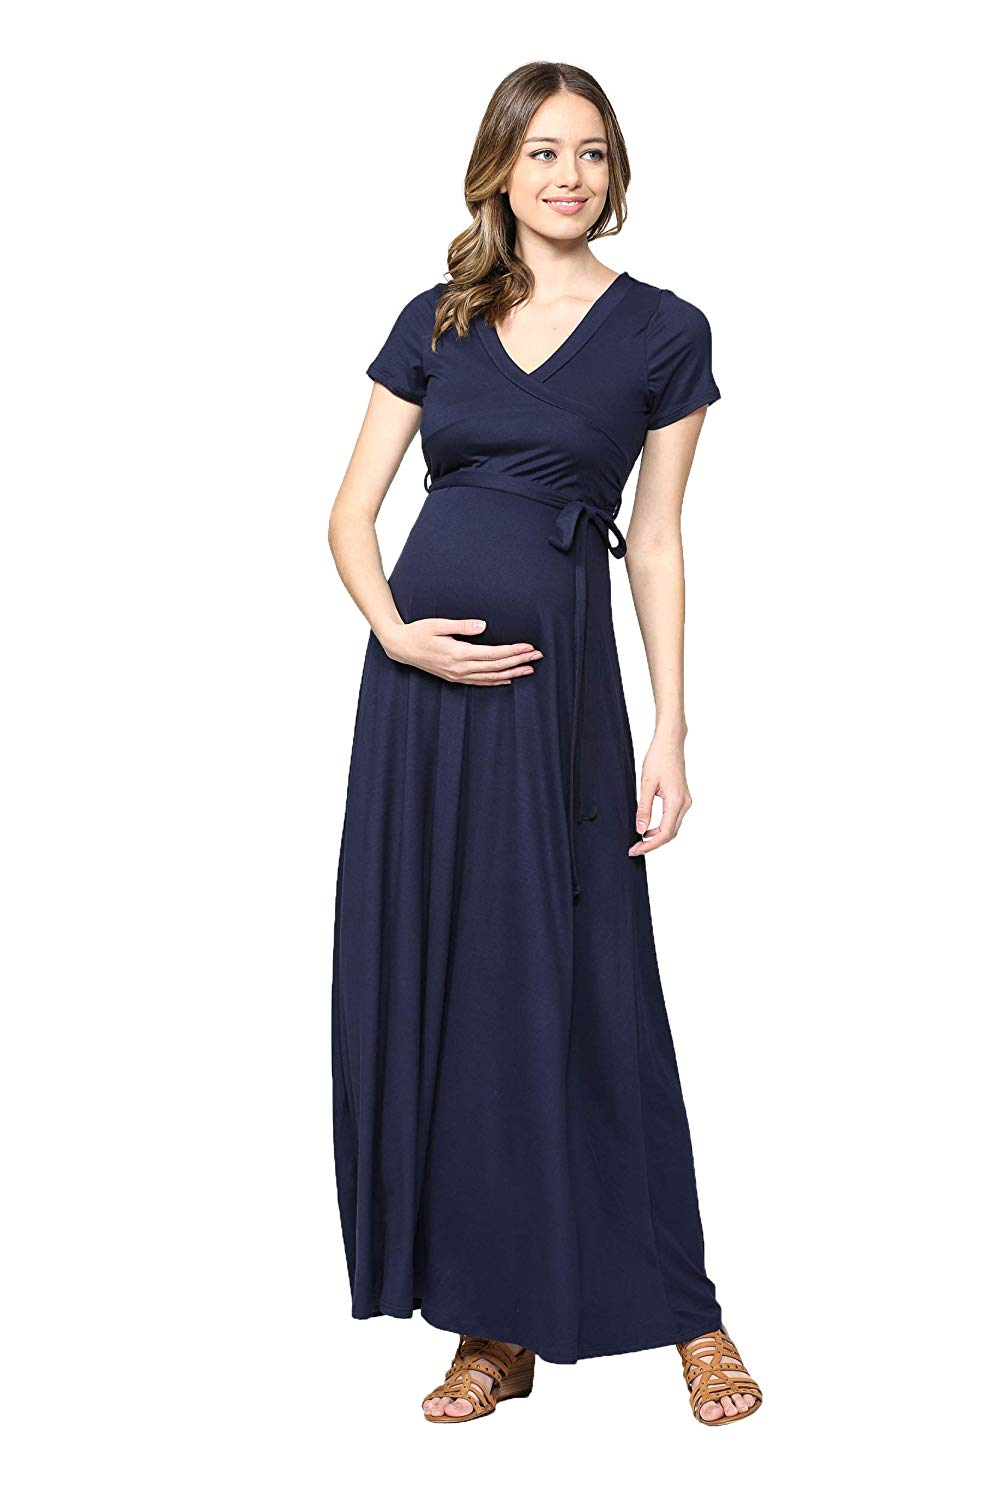 navy maternity dress